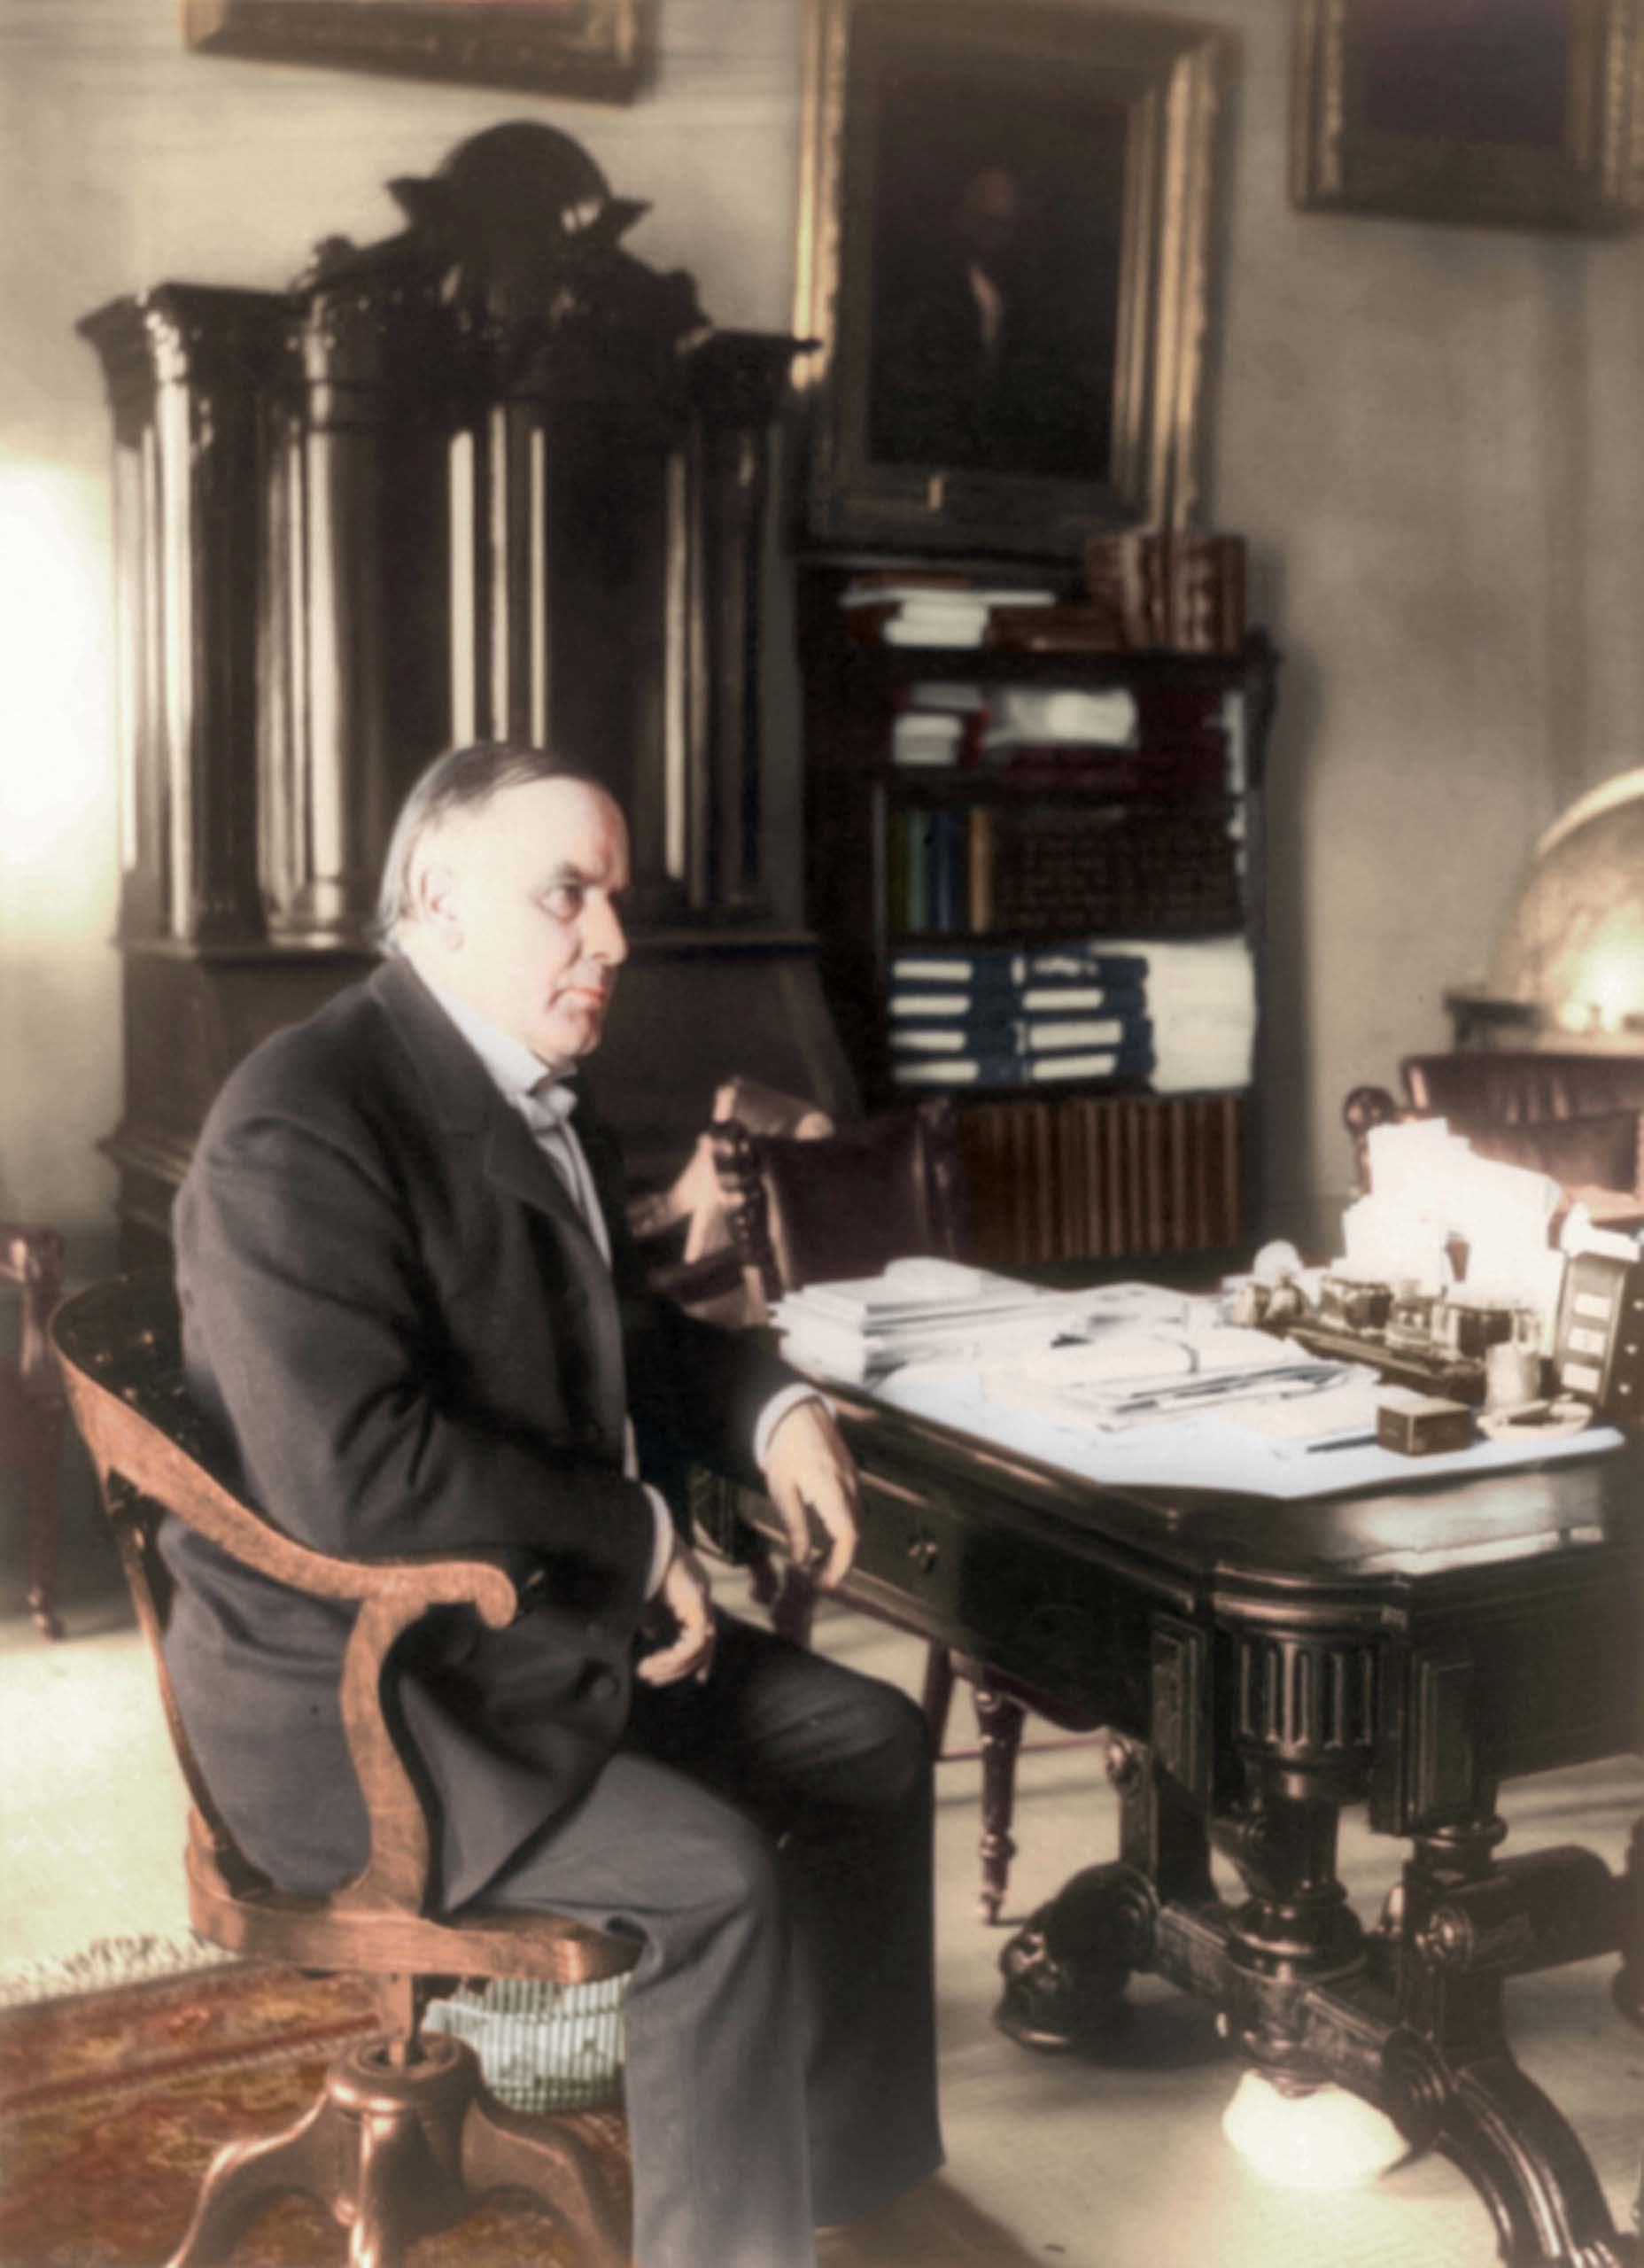 c. June 7, 1898. William McKinley, full length portrait, seated at desk, facing right.                                   <i>Ranked #21 in SRI survey of U.S. Presidents.</i>